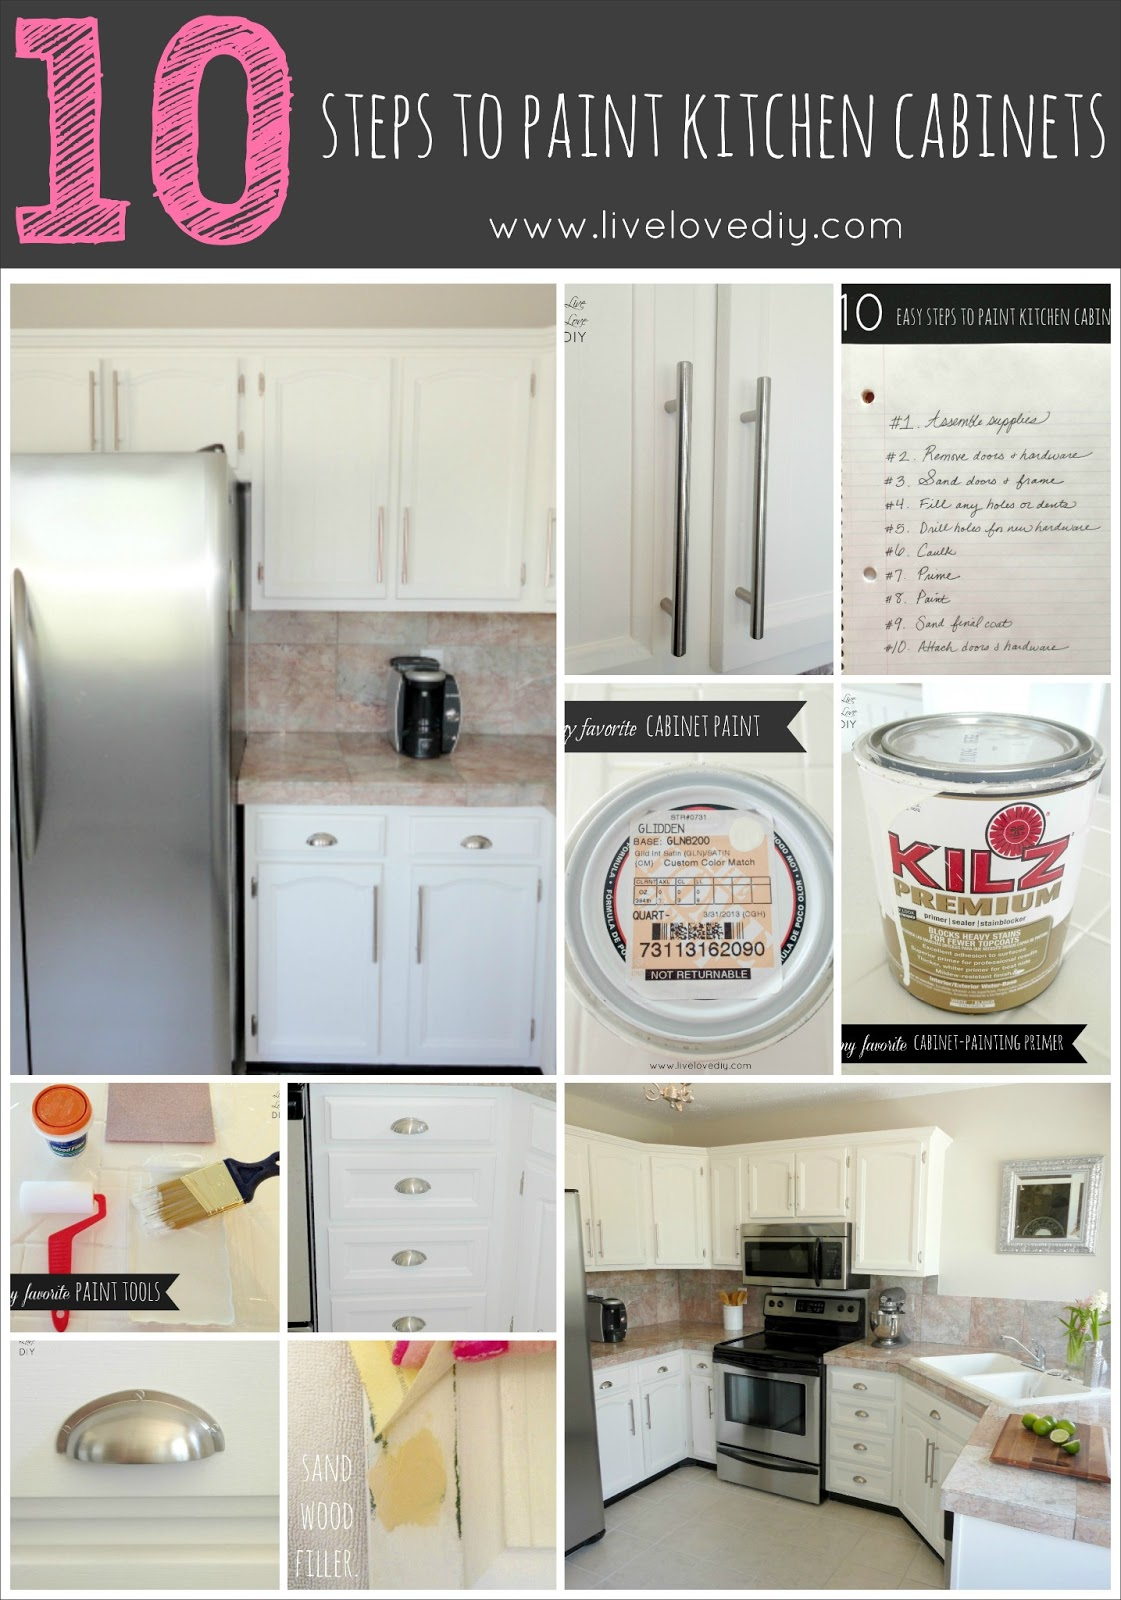 10 steps to paint your kitchen cabinets the easy way an easy. Black Bedroom Furniture Sets. Home Design Ideas